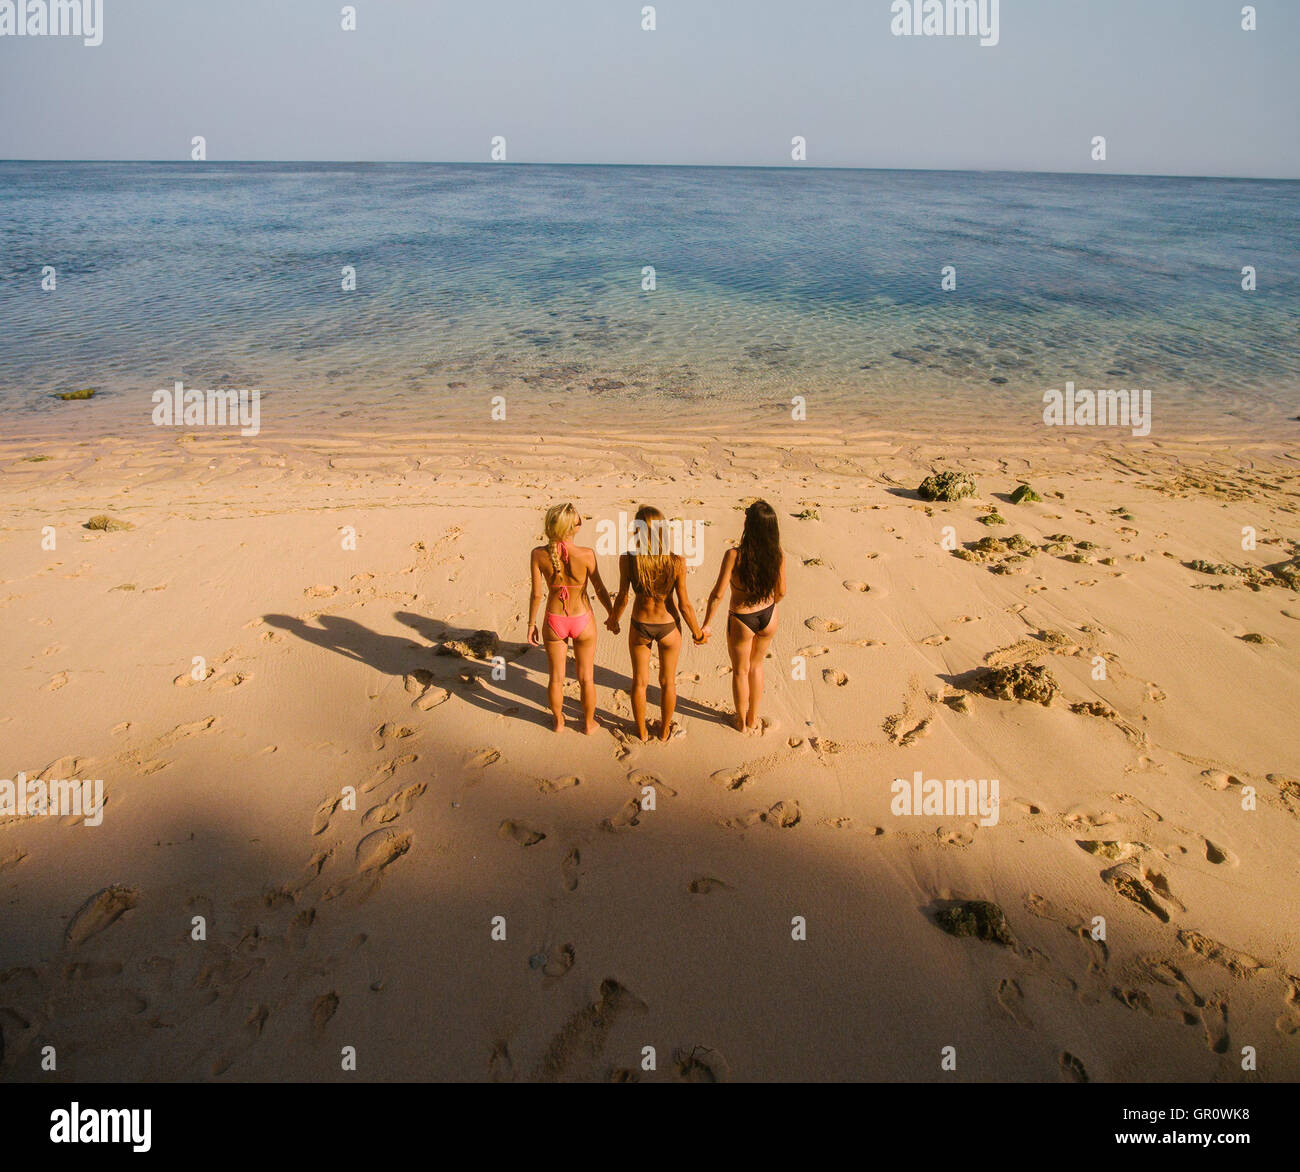 Aerial view of three young female friends standing on the beach holding hands and looking at the sea. Rear view - Stock Image